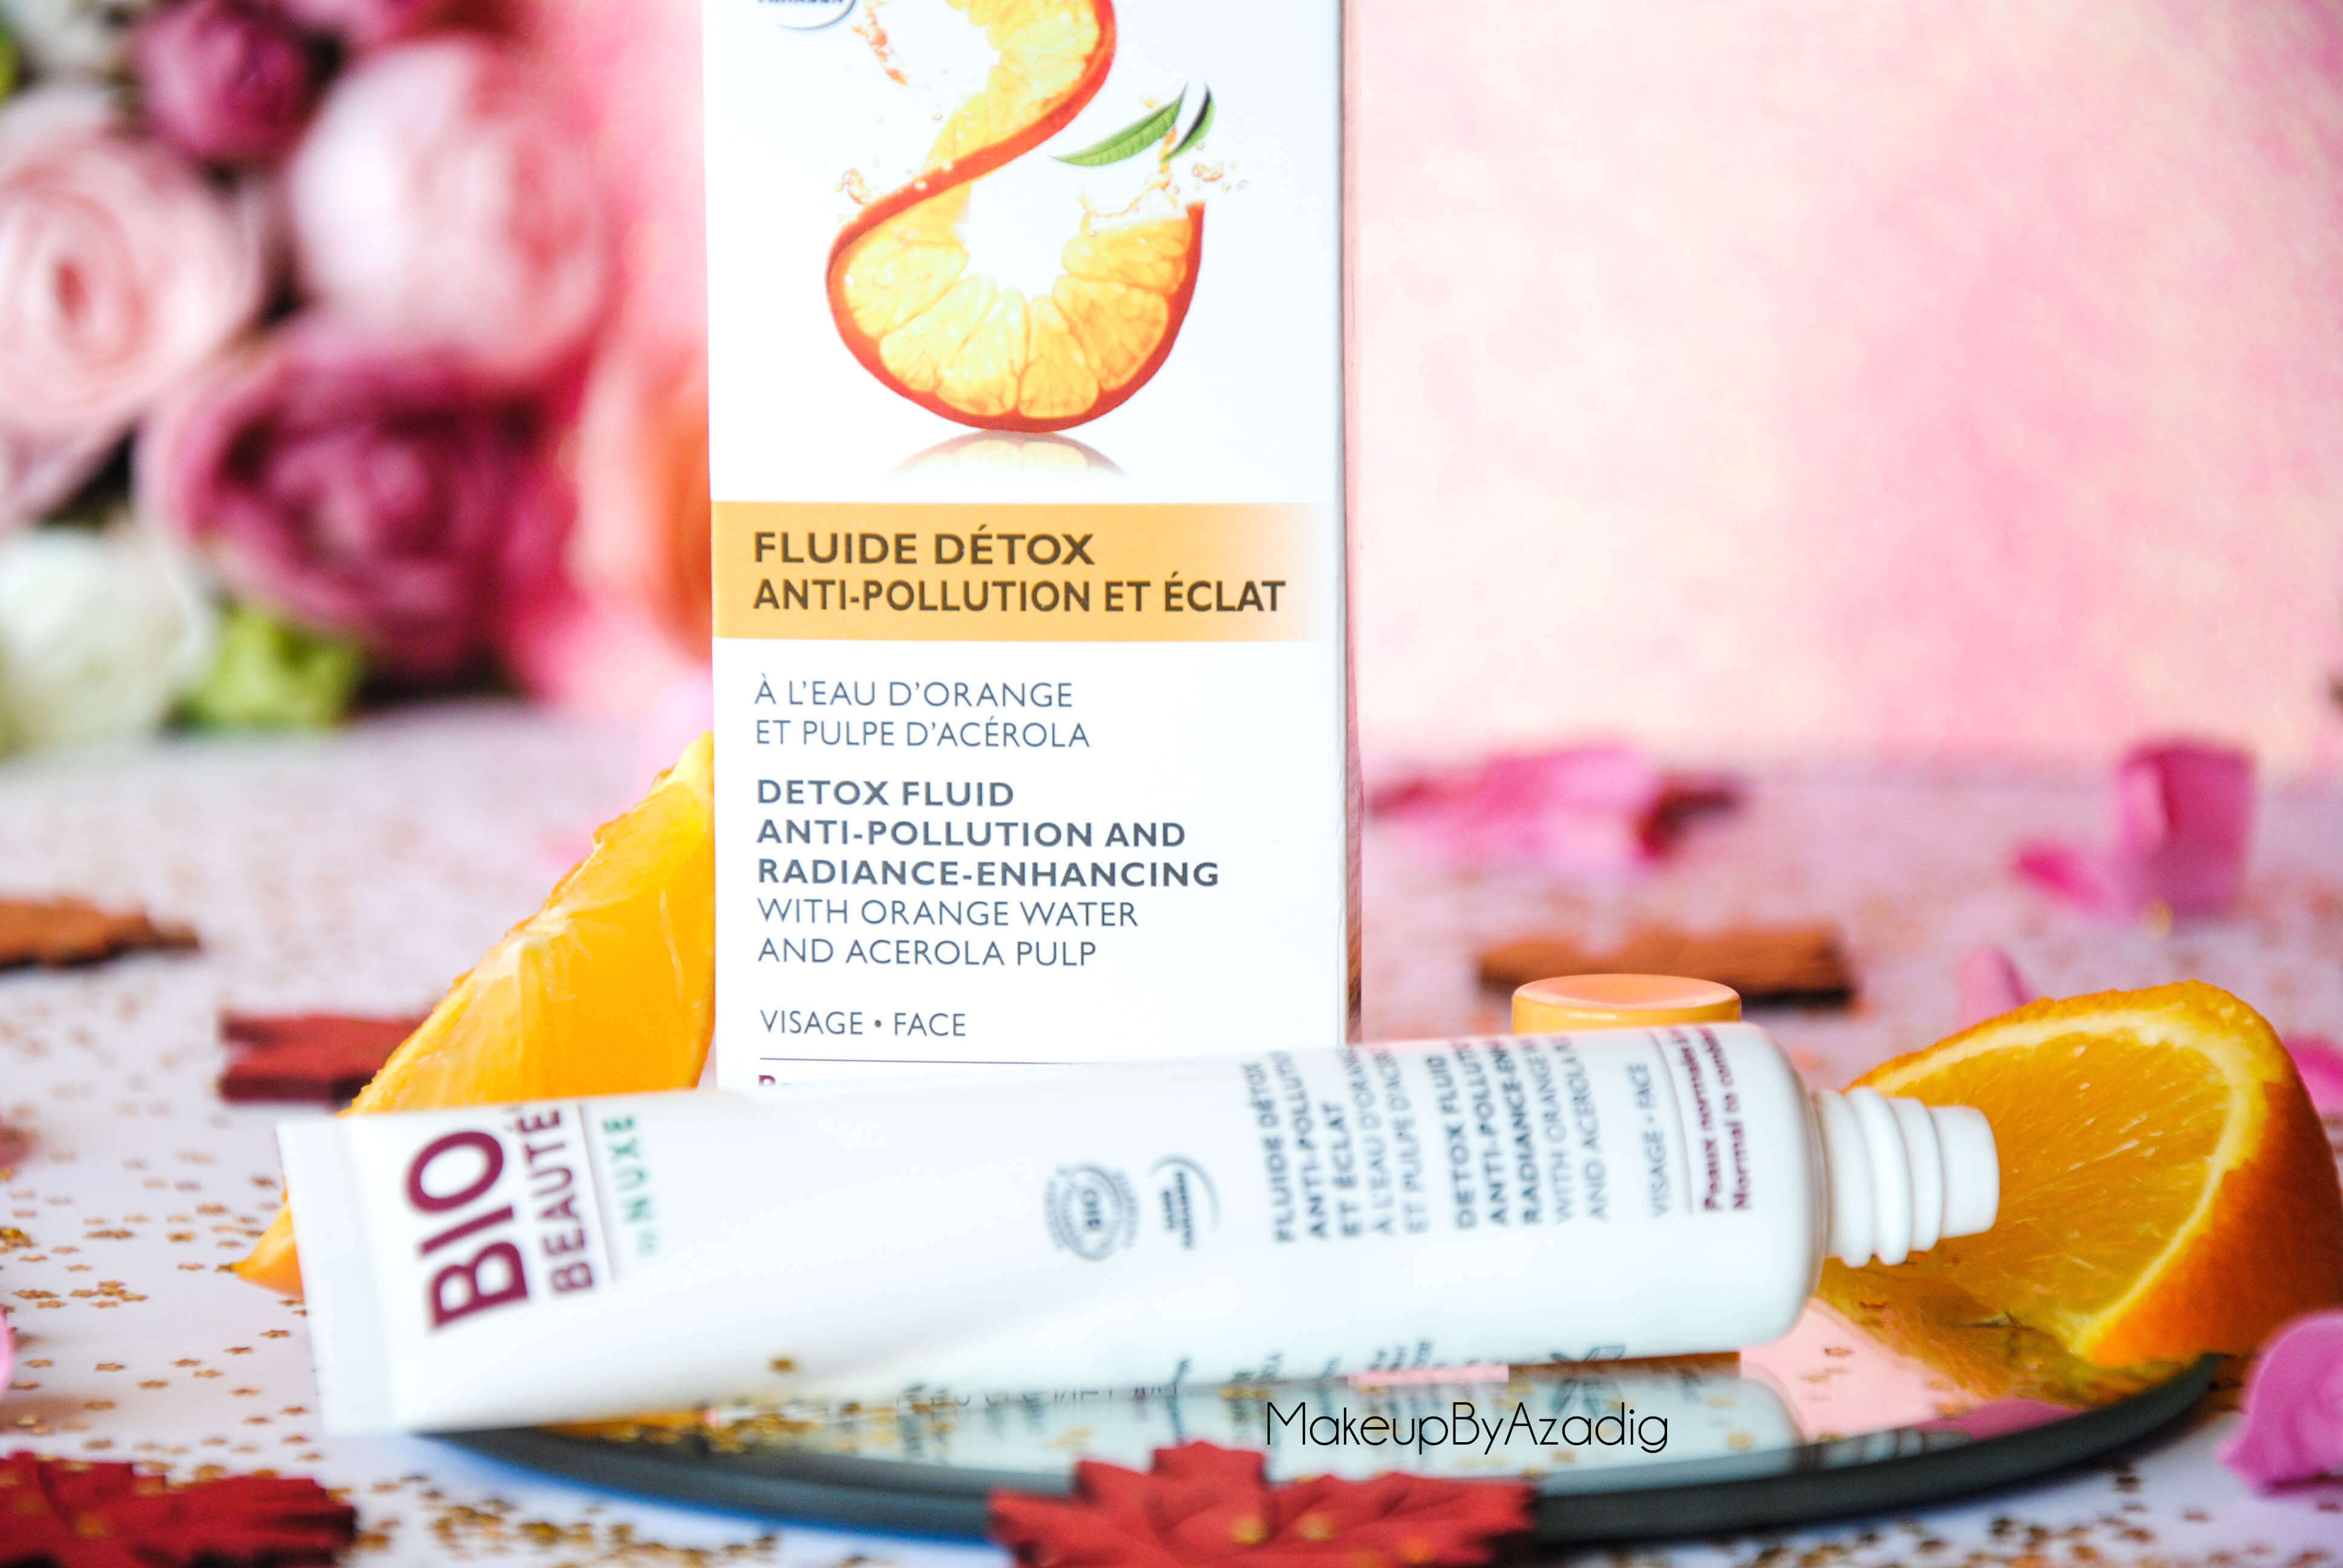 bio-beaute-nuxe-lotion-fluide-creme-contour-des-yeux-masque-orange-acerola-doctipharma-routine-du-matin-detox-soin-troyes-paris-makeupbyazadig-blog-revue-review-anti-pollution-fluide